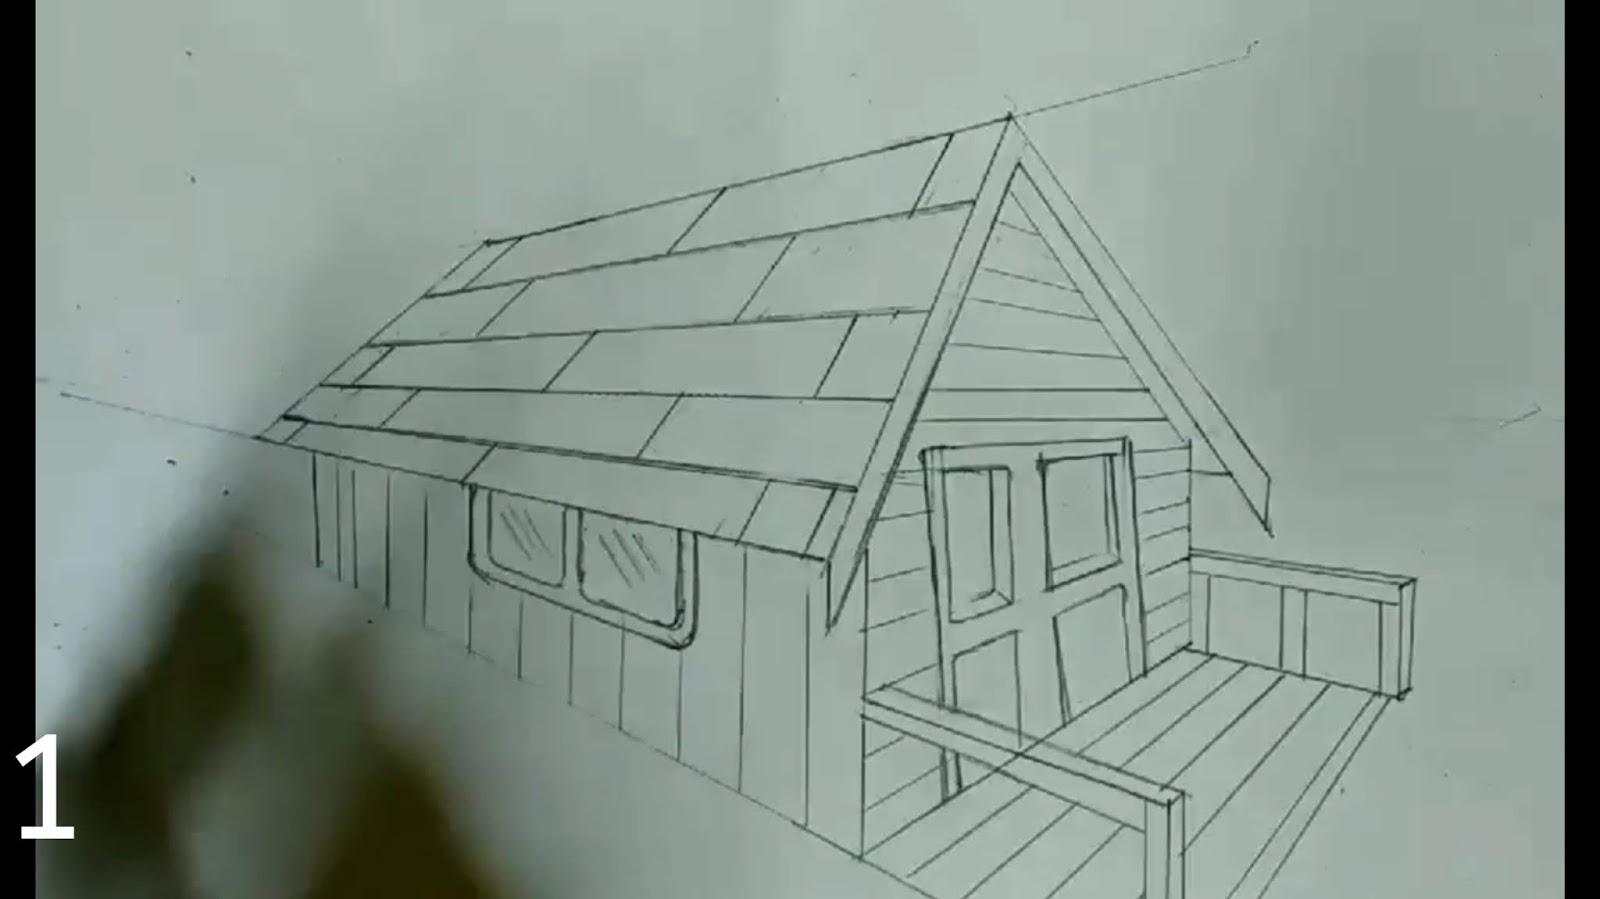 Artofrohit Com How To Draw Wooden Texture On House By Using